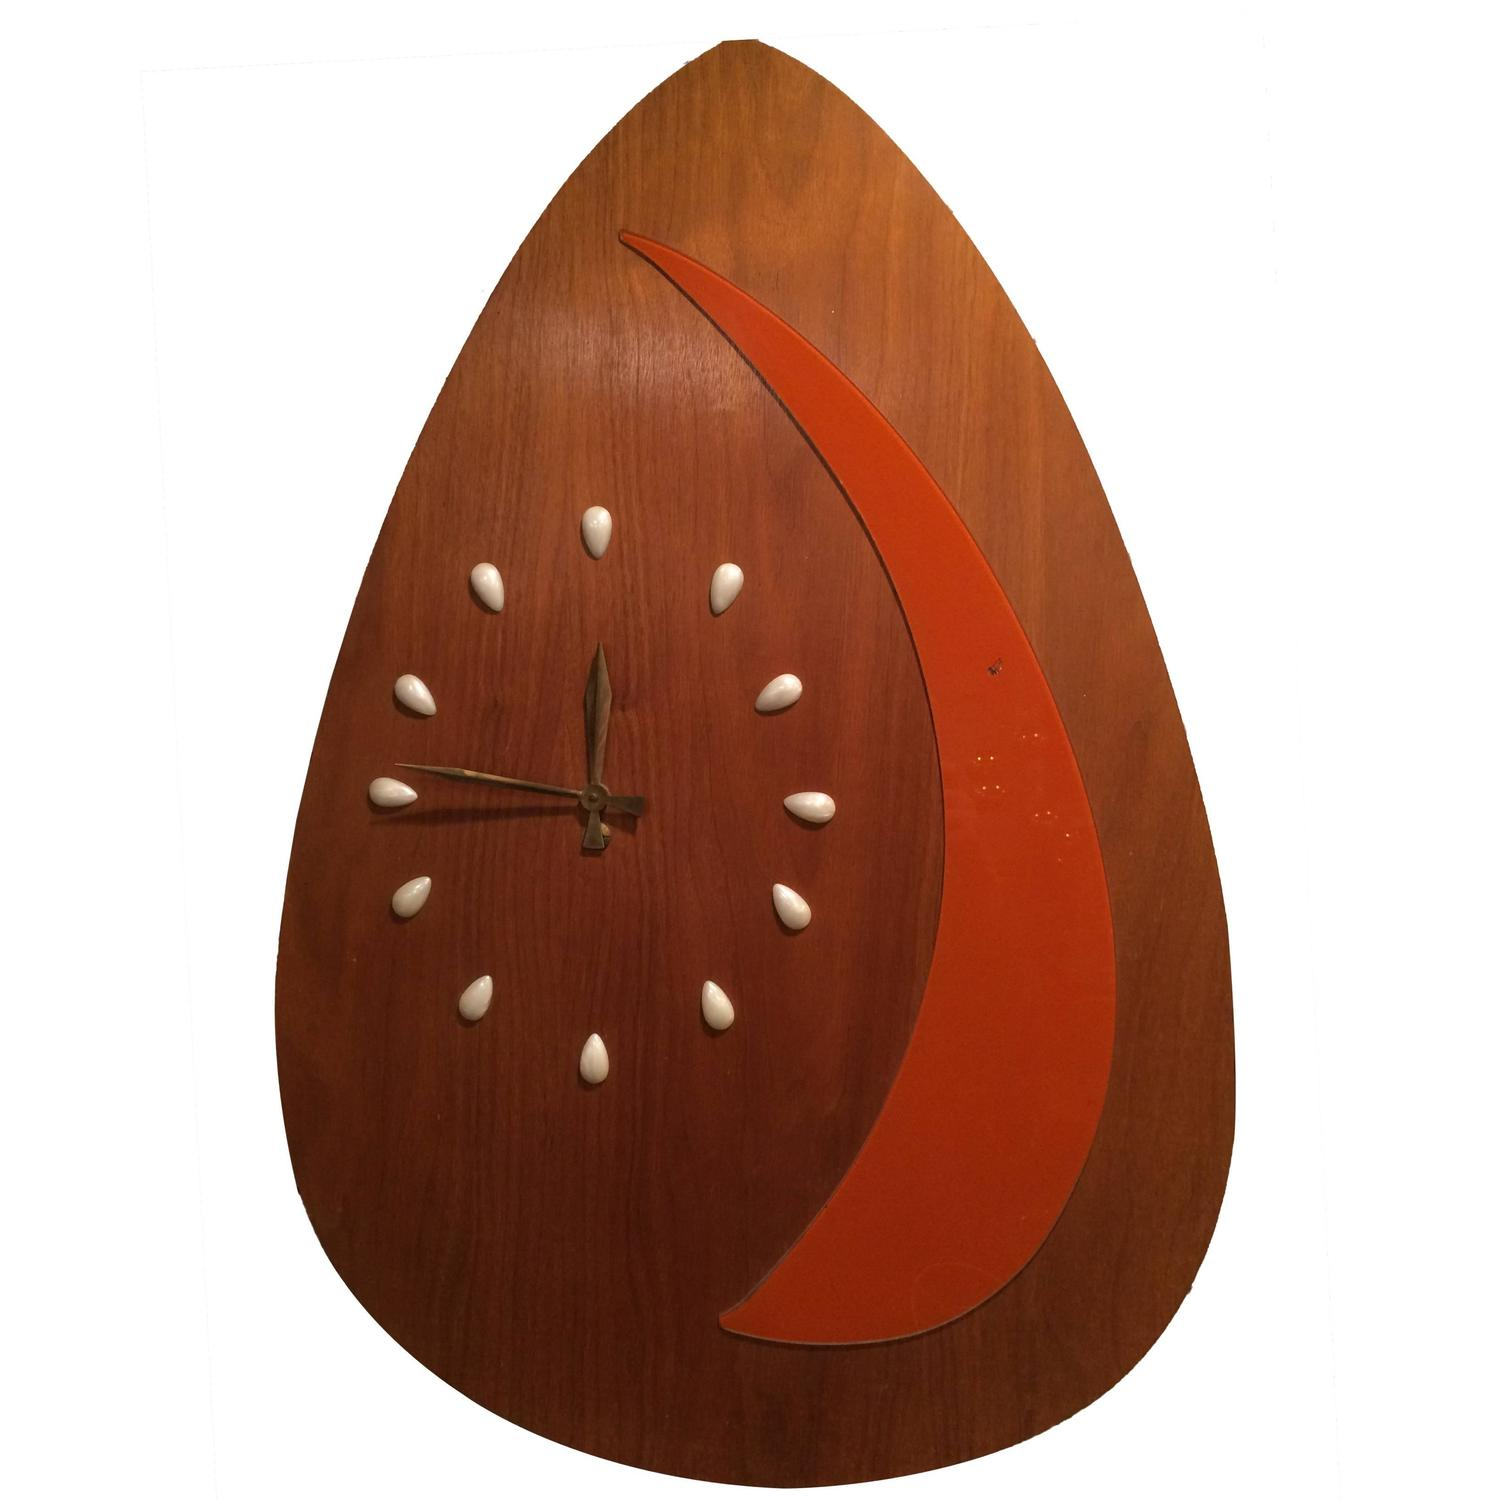 huge rare midcentury modern guitar pick wall clock at stdibs -